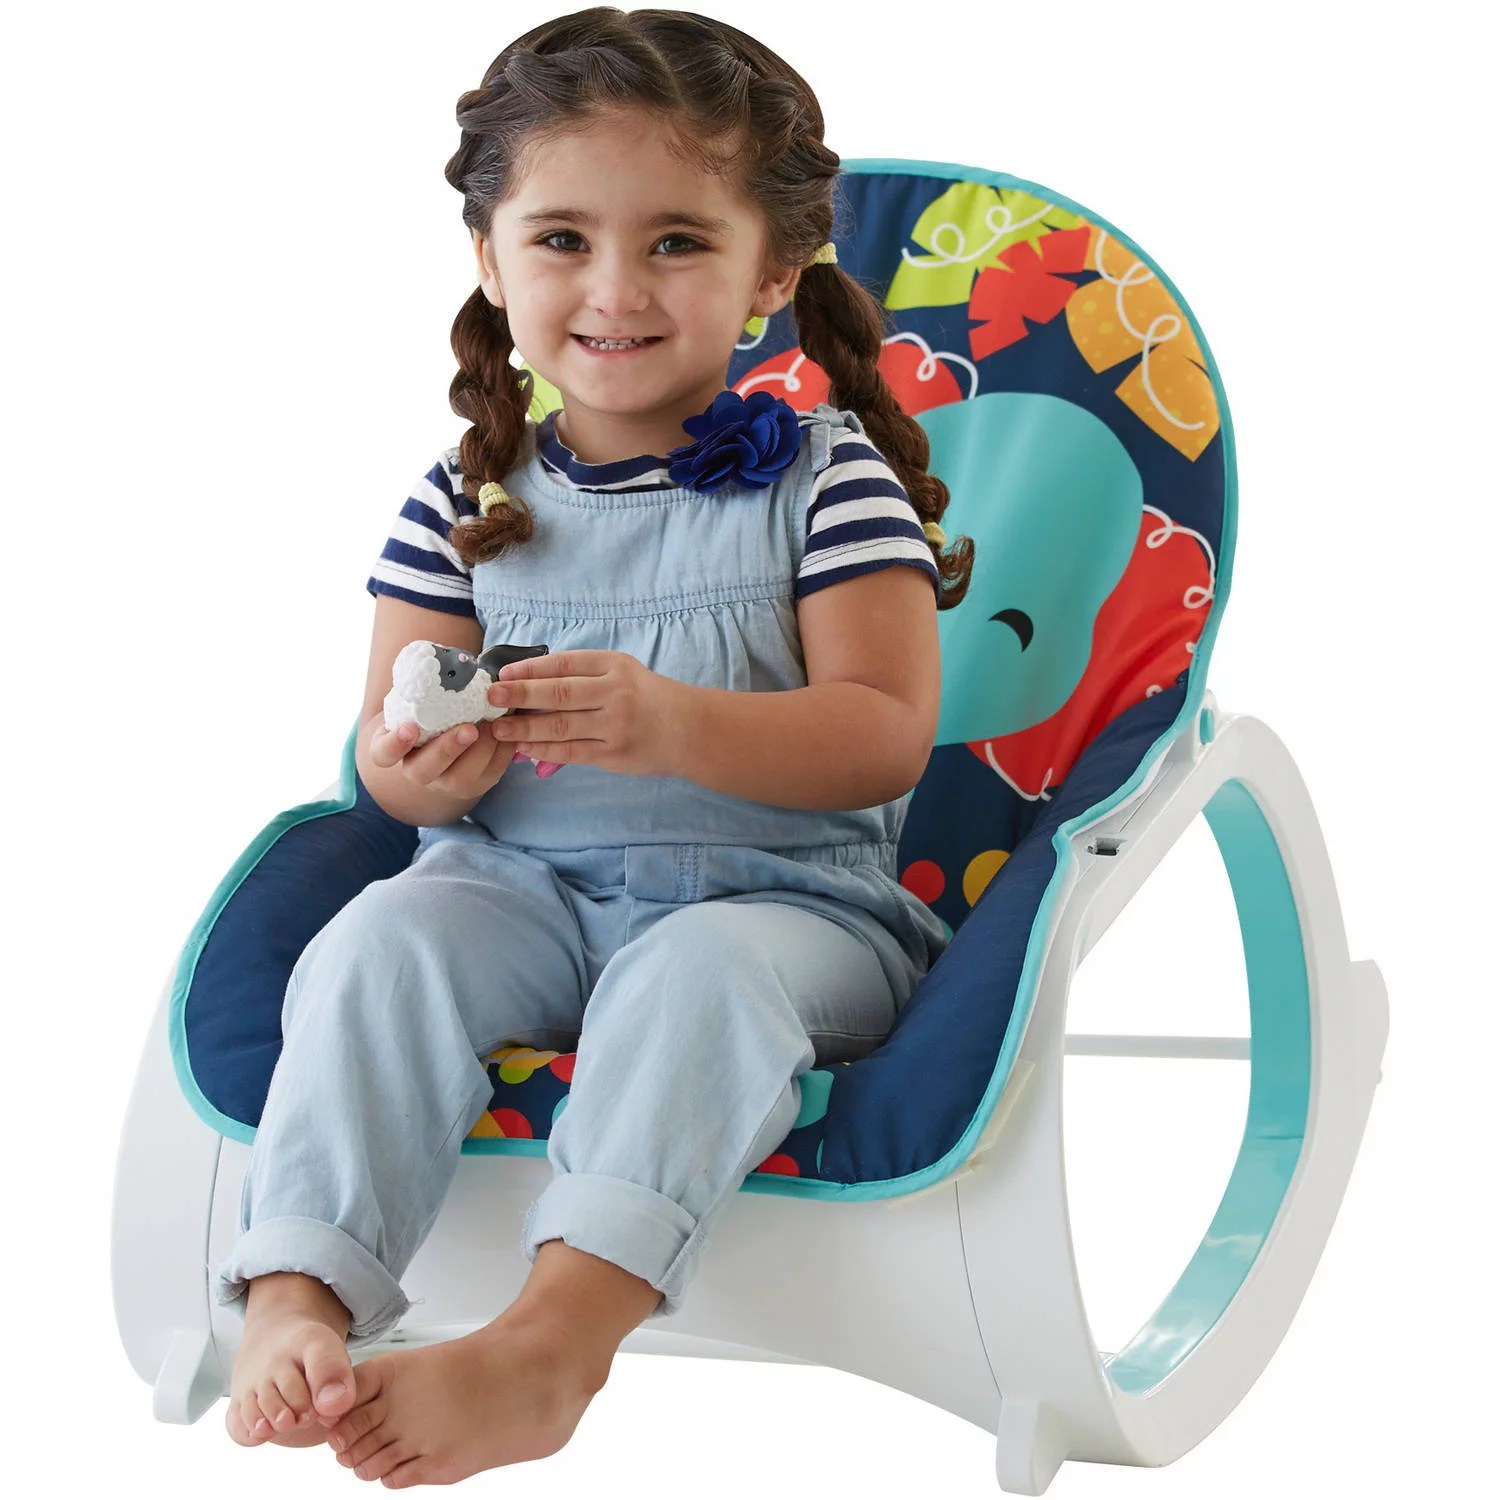 Toddler Rocker Chair Fisher Price Infant To Toddler Rocker Baby Seat Bouncer